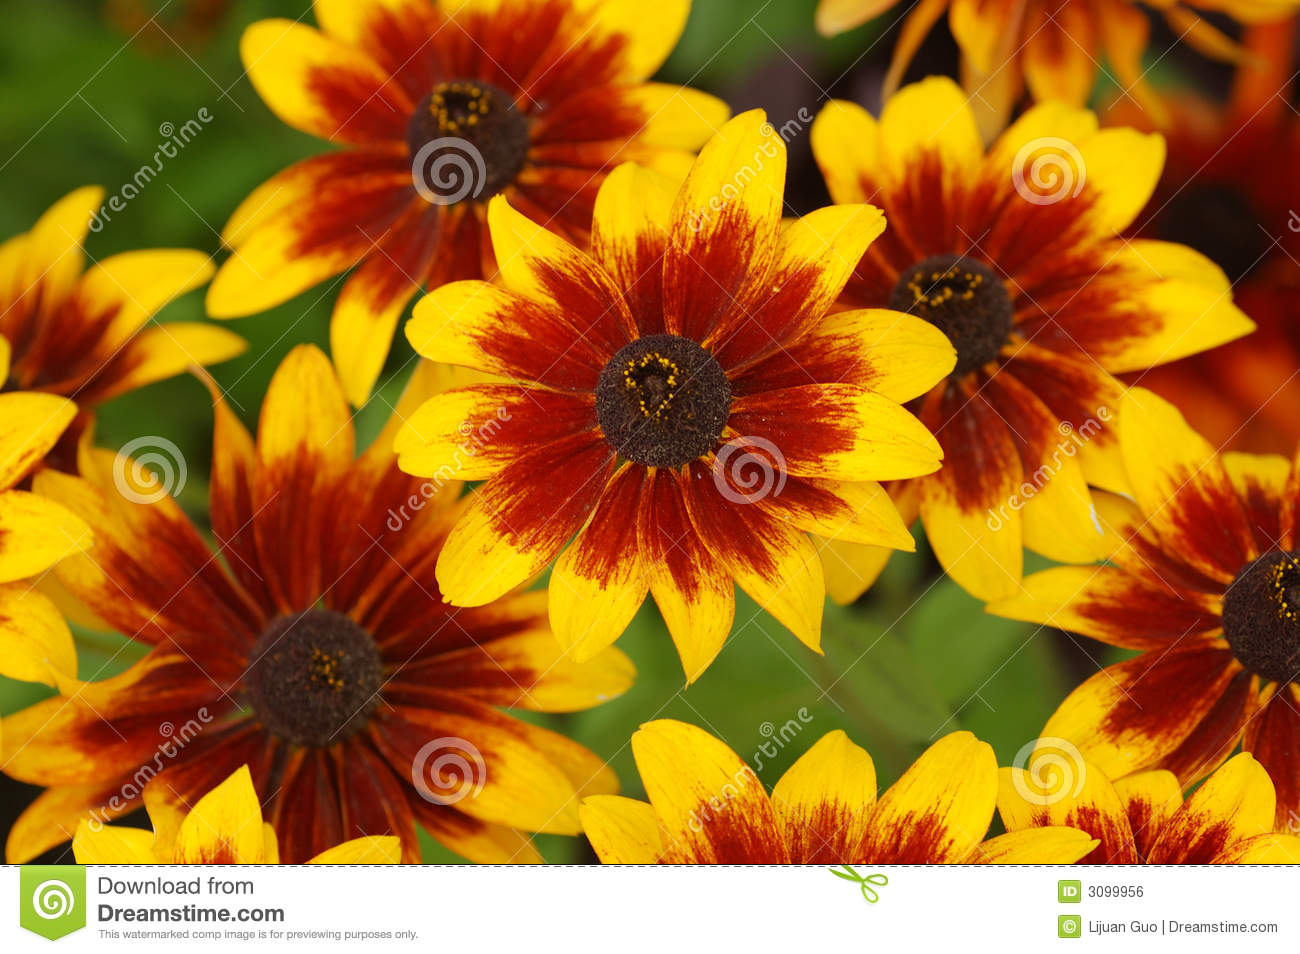 Fall color with rudbeckia flowers, common name, cone-flowers.